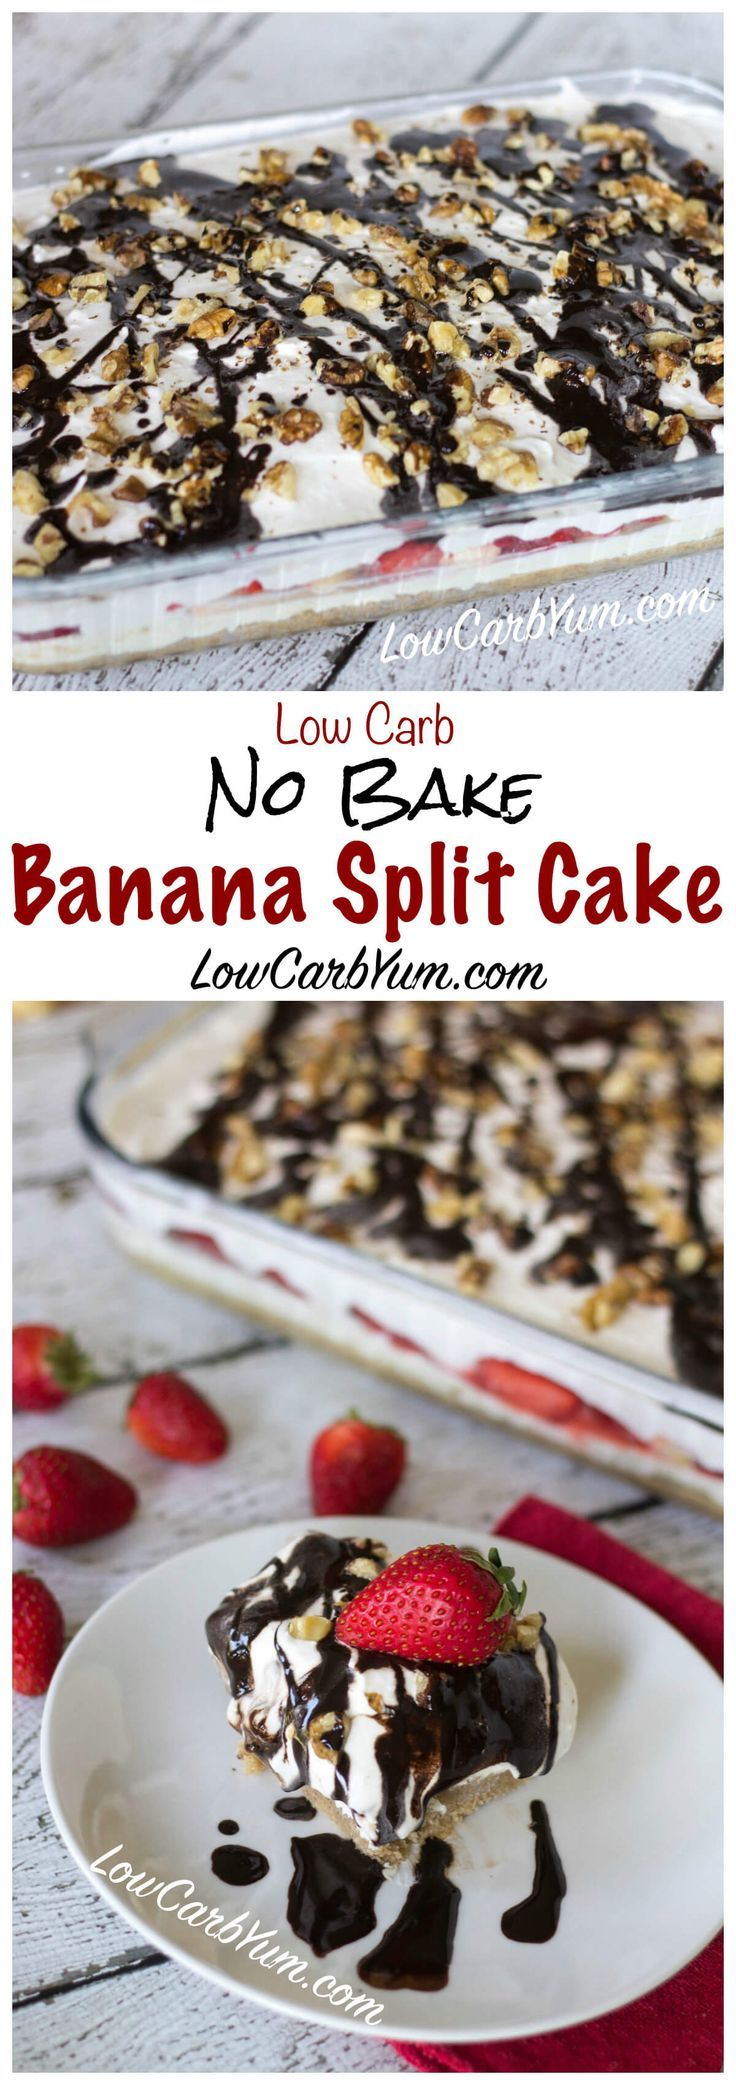 A delicious no bake low carb banana split cake cheesecake that looks and tastes spectacular! You can make a large pan of this yummy low carb dessert to share at a party. LCHF Keto Banting Gluten Free Dessert Recipe